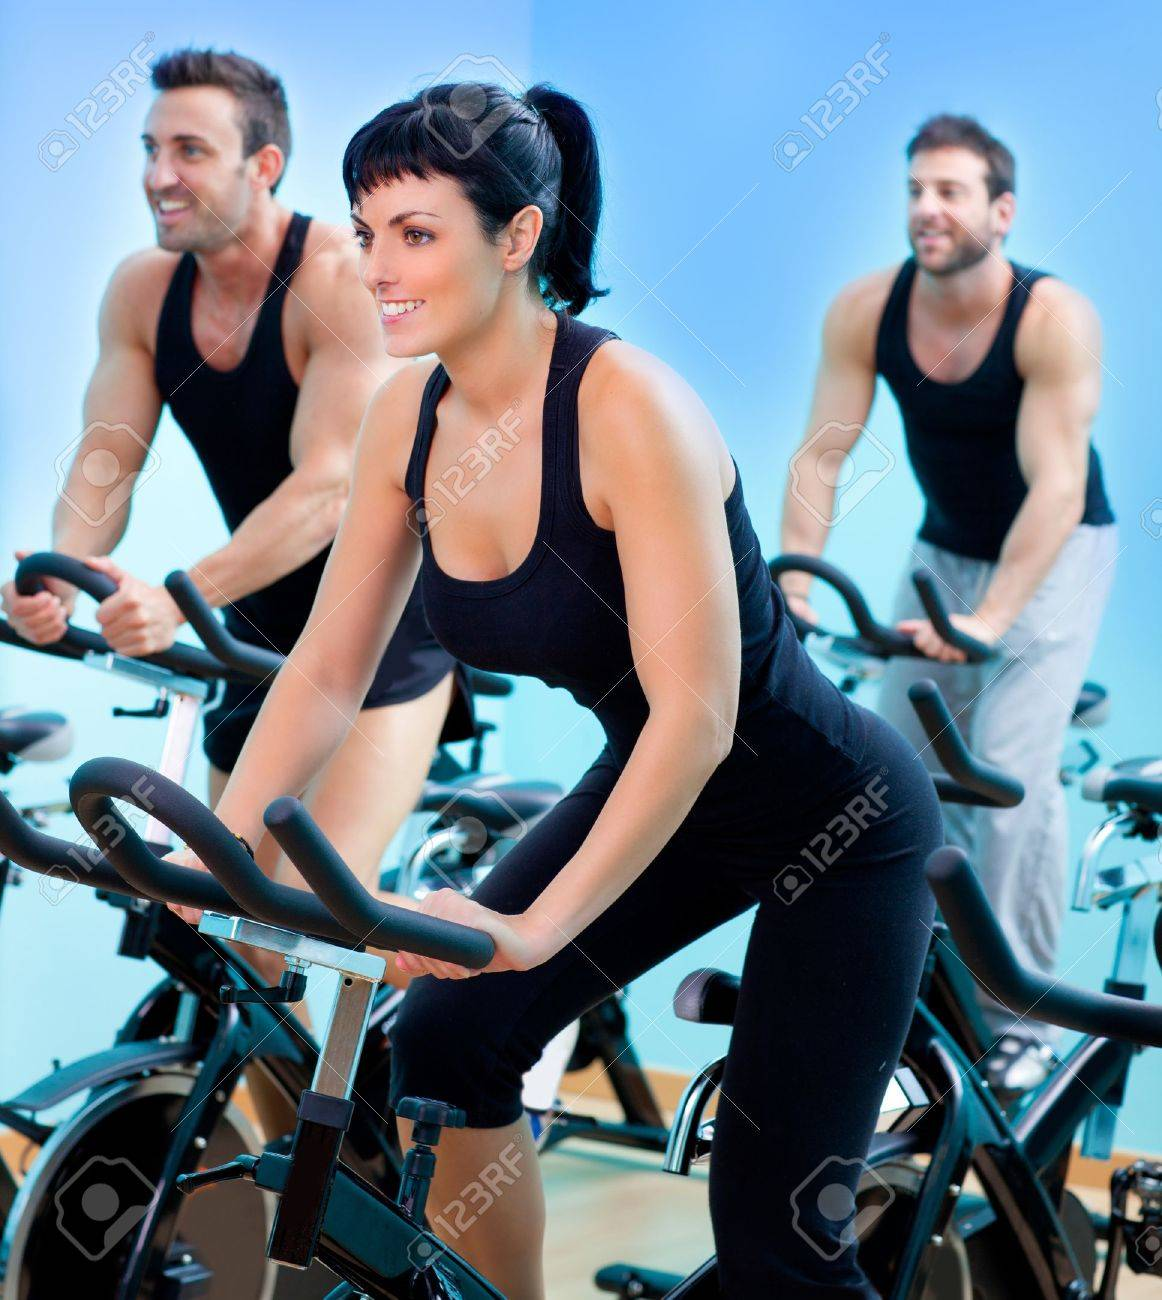 Stationary spinning bicycles fitness girl in a gym sport club Stock Photo - 11982237